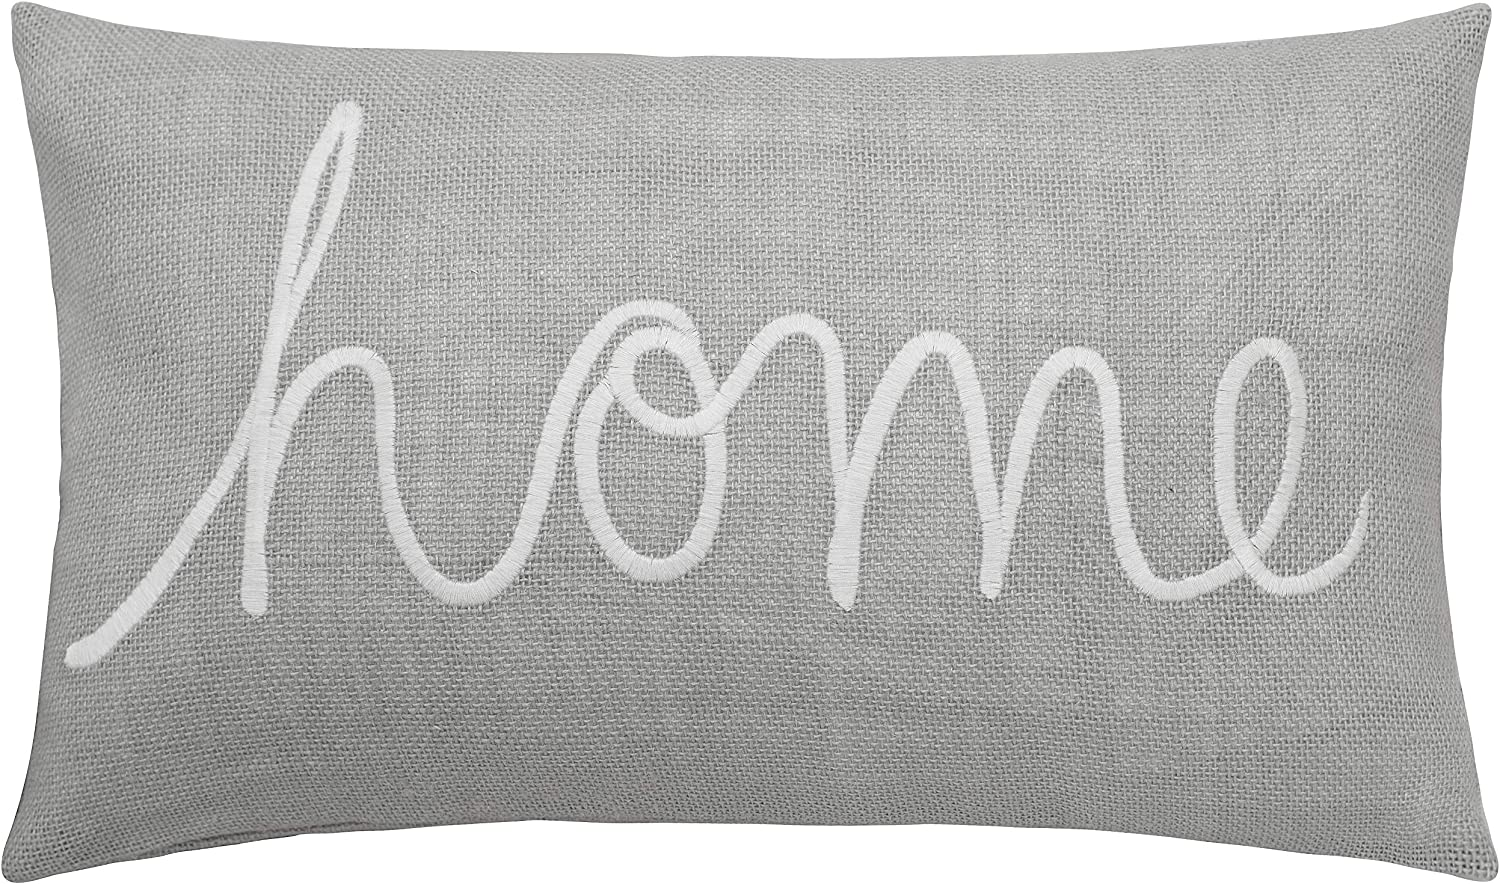 """MANOJAVAYA Home 12""""x20"""" Grey Burlap Embroidered Decorative Oblong Pillow Throw Cover for Entryway Housewarming Bench Couch Beach House Living Room Farmhouse Guest Bedroomr (12""""X20"""", Home(Grey))"""